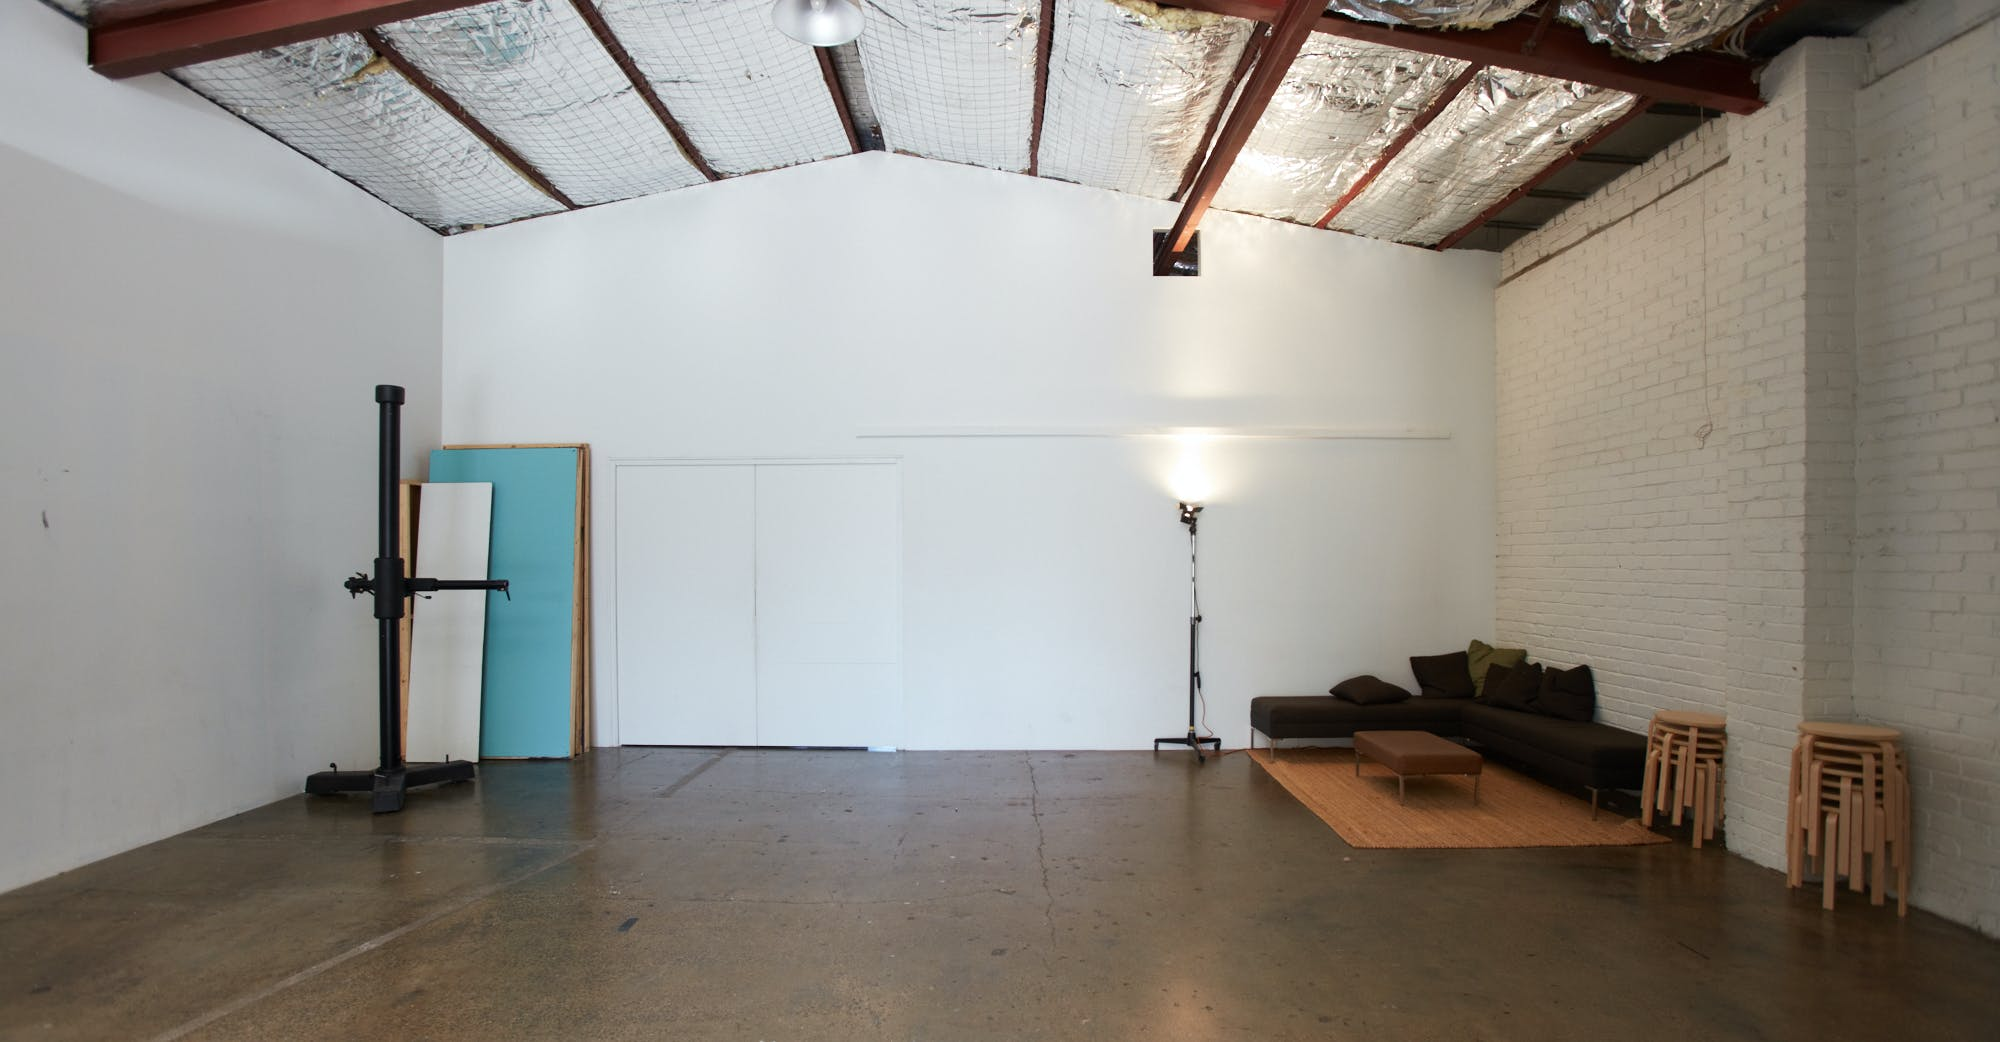 Flexible studio space, creative studio at Council Street, image 1